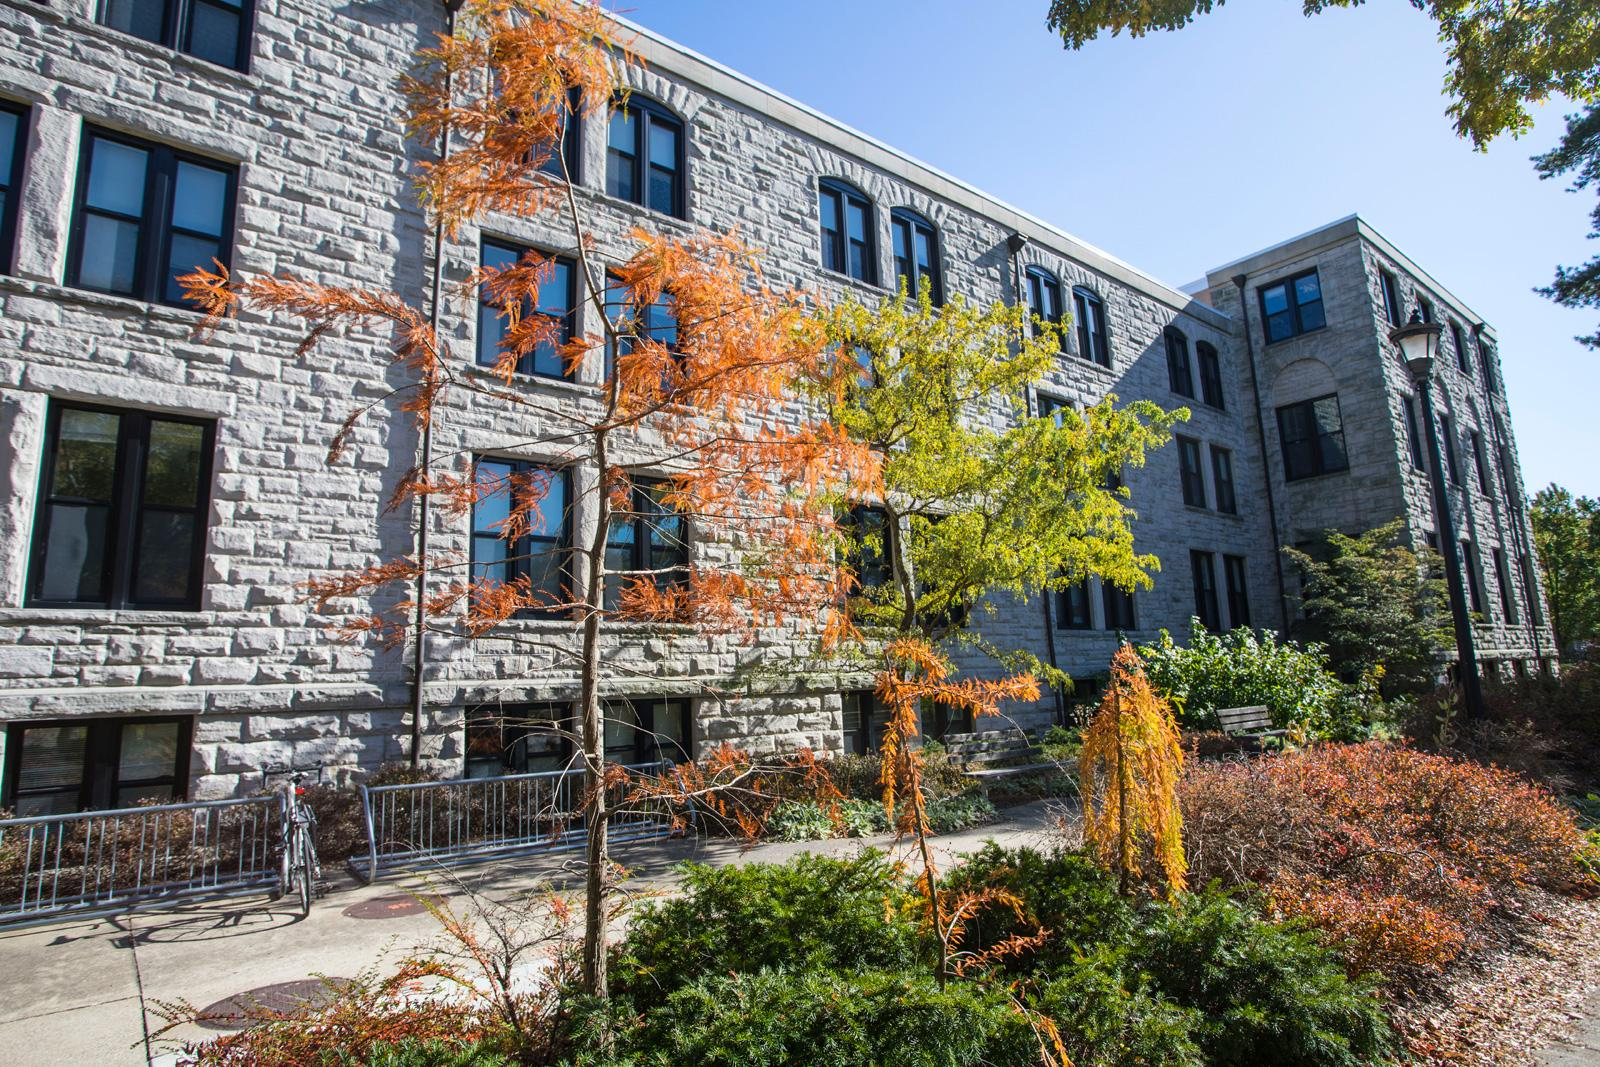 The stone facade of Rice Hall faces young trees and a bike rack.